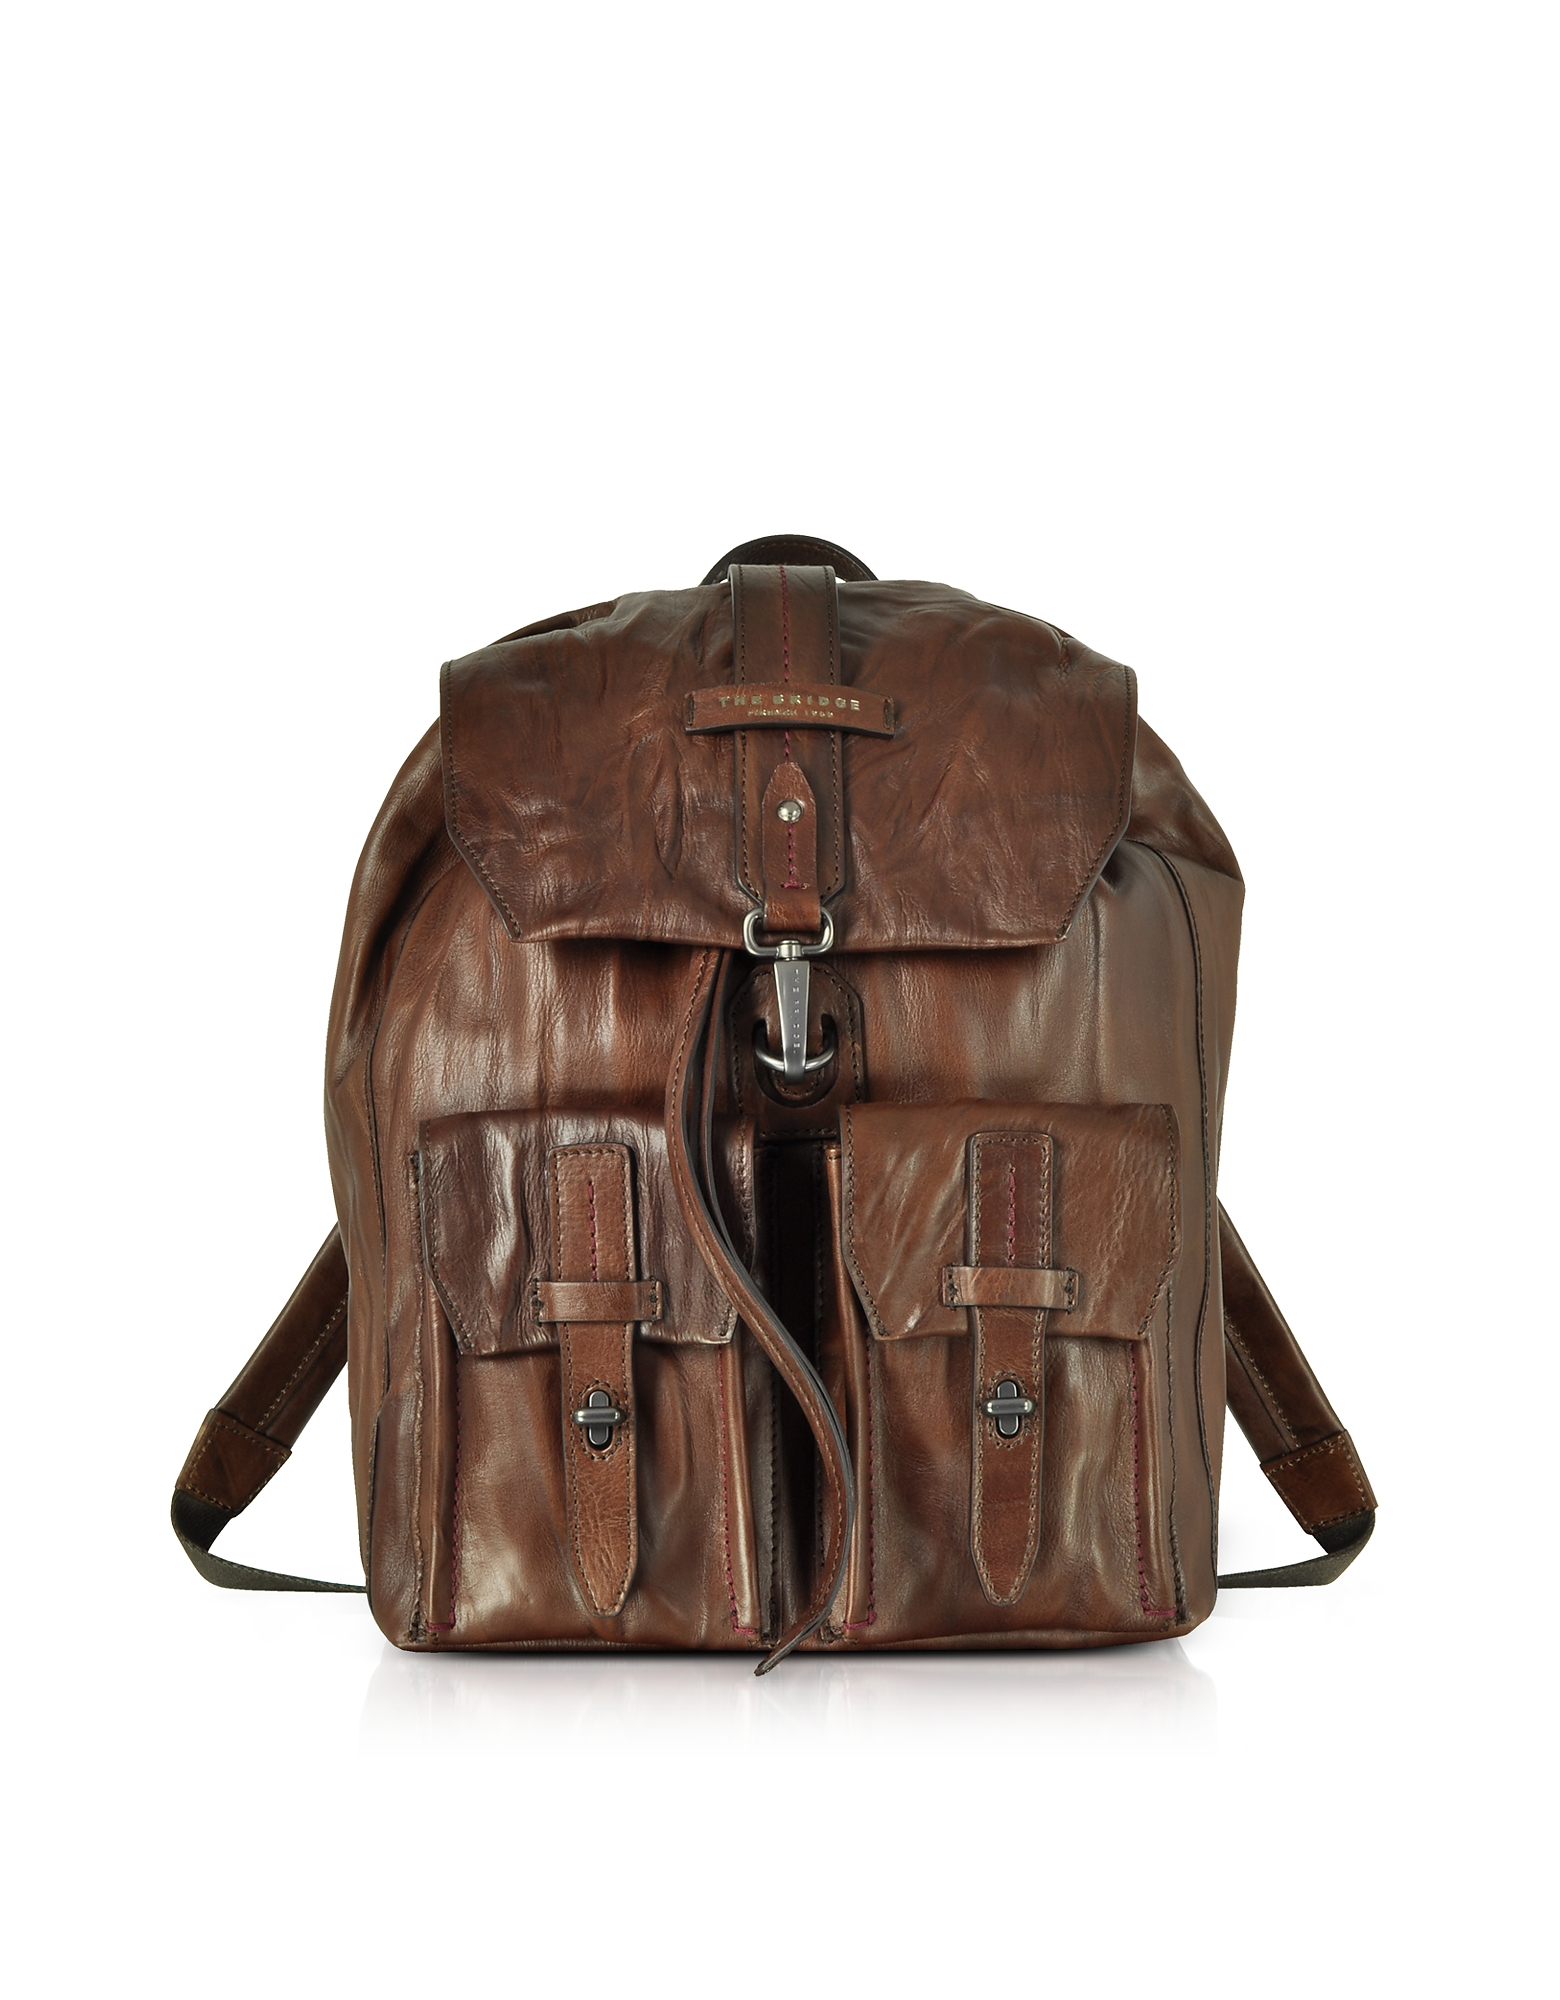 Image of The Bridge Designer Backpacks, Washed Calf Leather Backpack